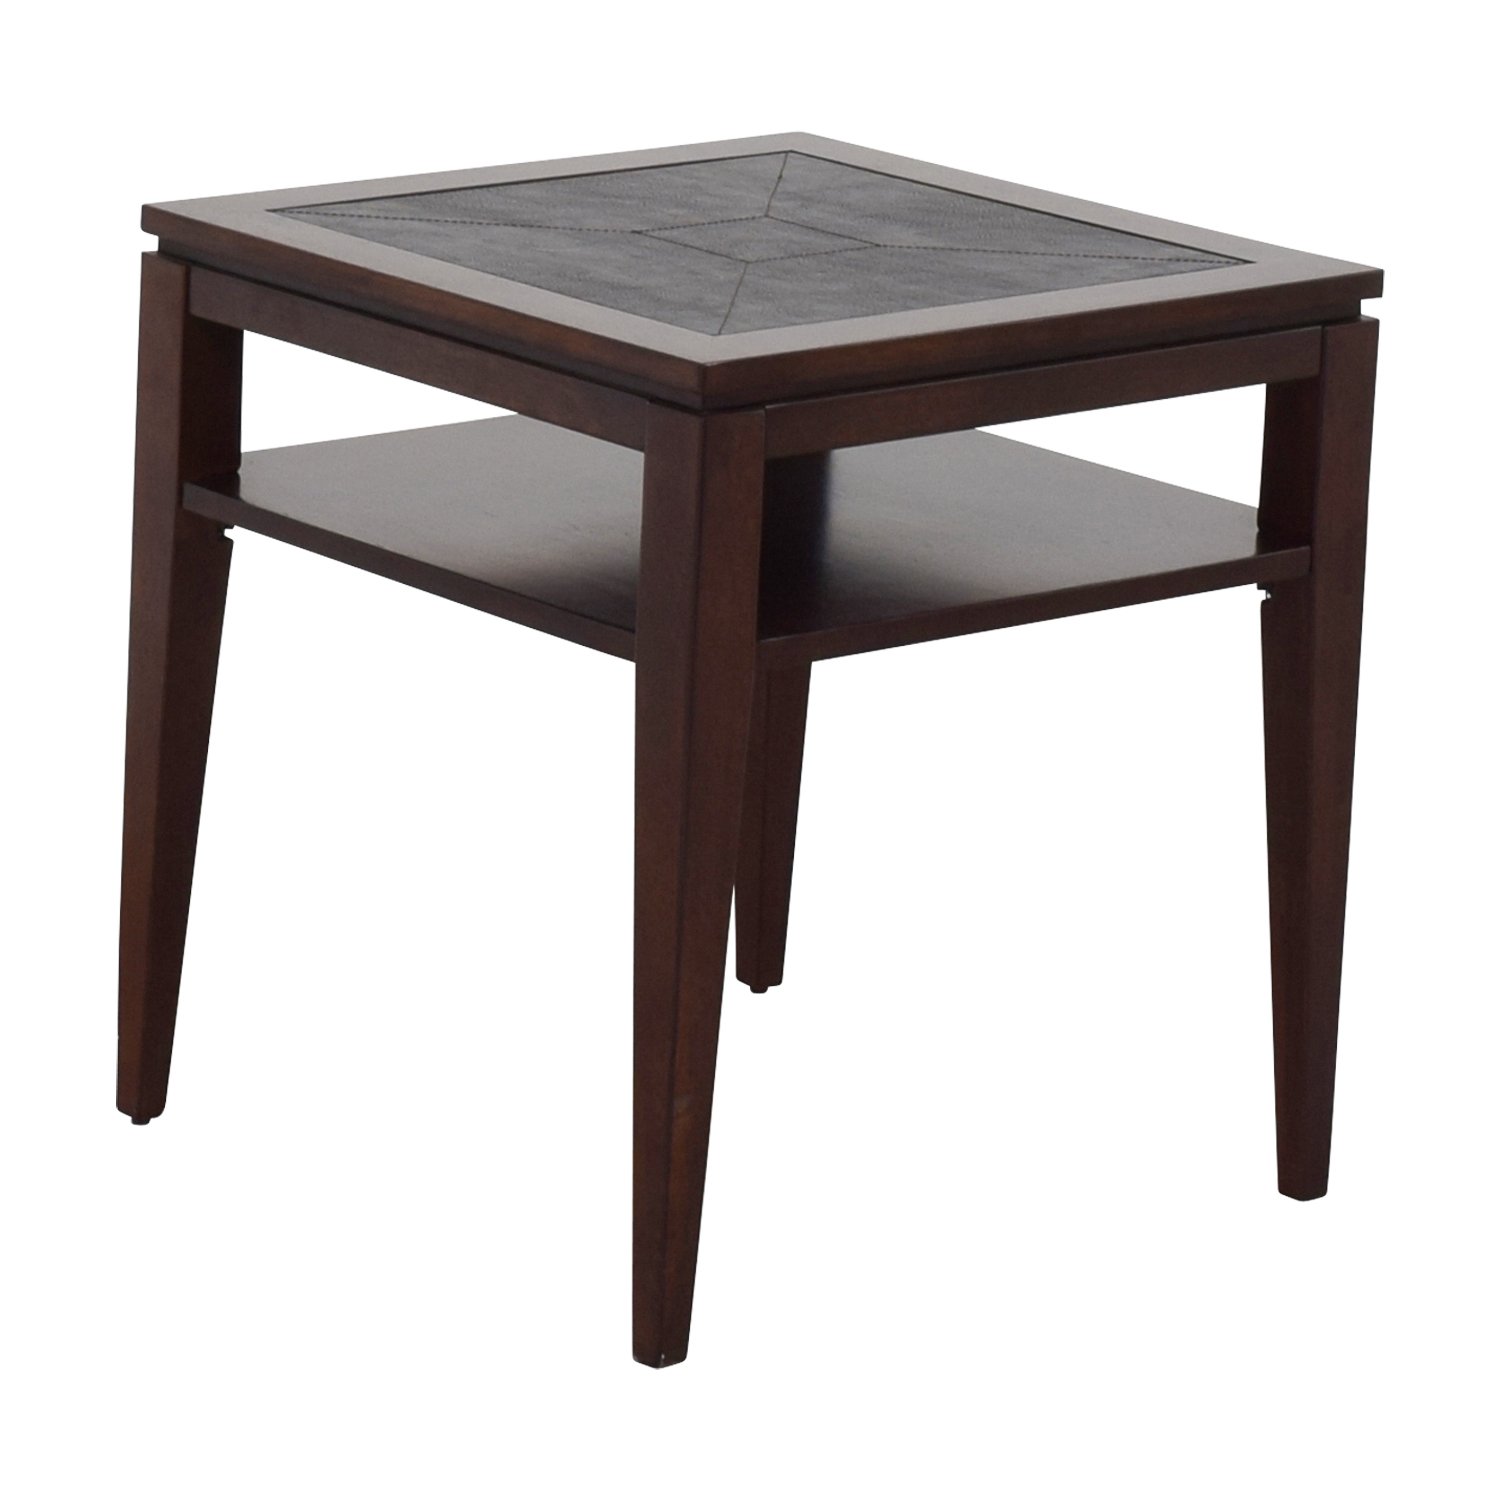 shop Raymour & Flanigan End Table Raymour & Flanigan Tables